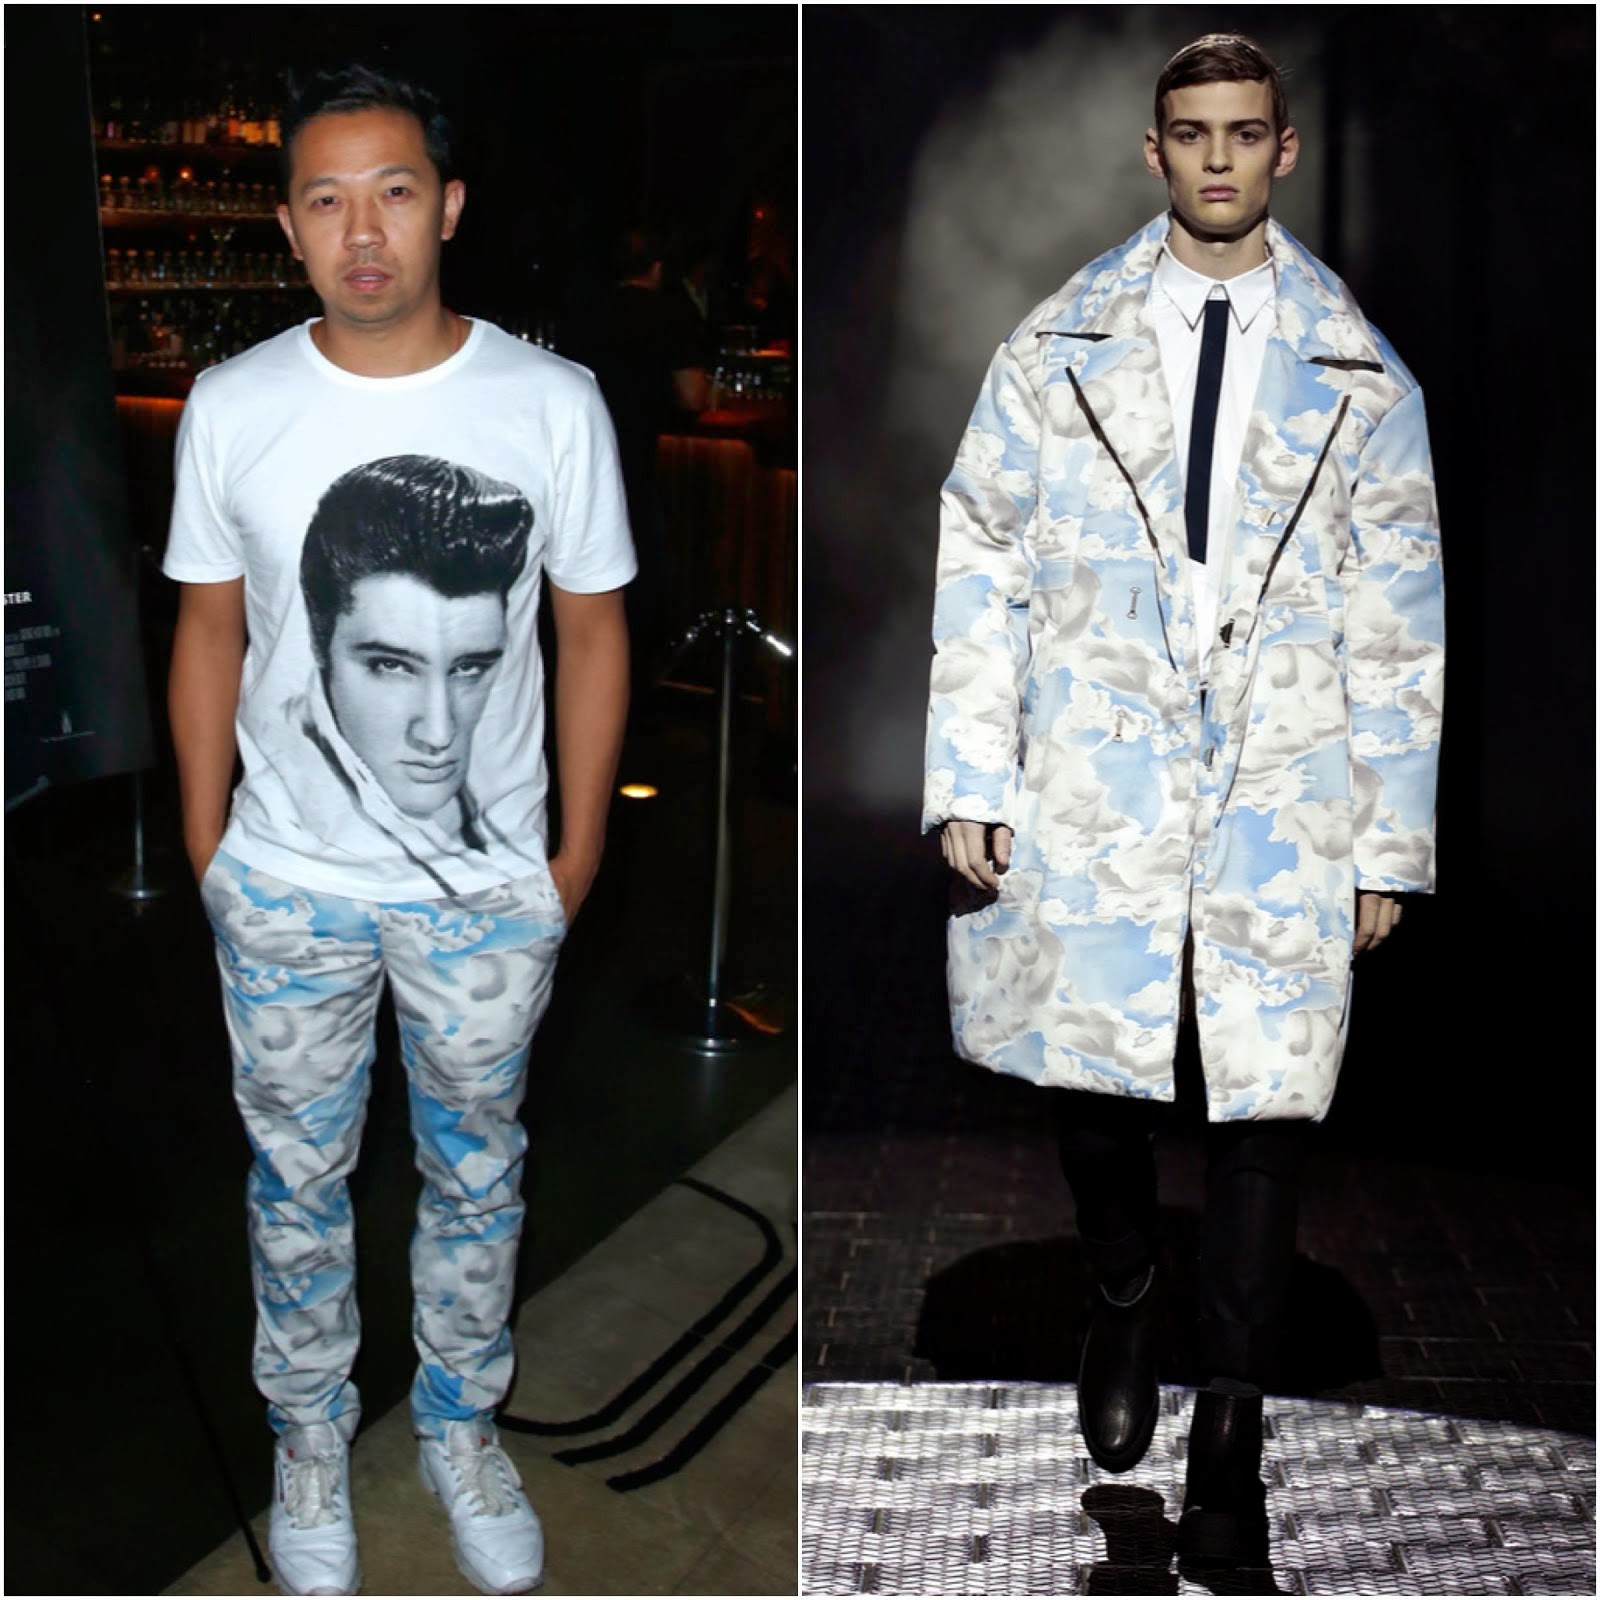 00O00 Menswear Blog: Humberto Leon's Kenzo cloud print trousers, The Grand Master Premiere, New York